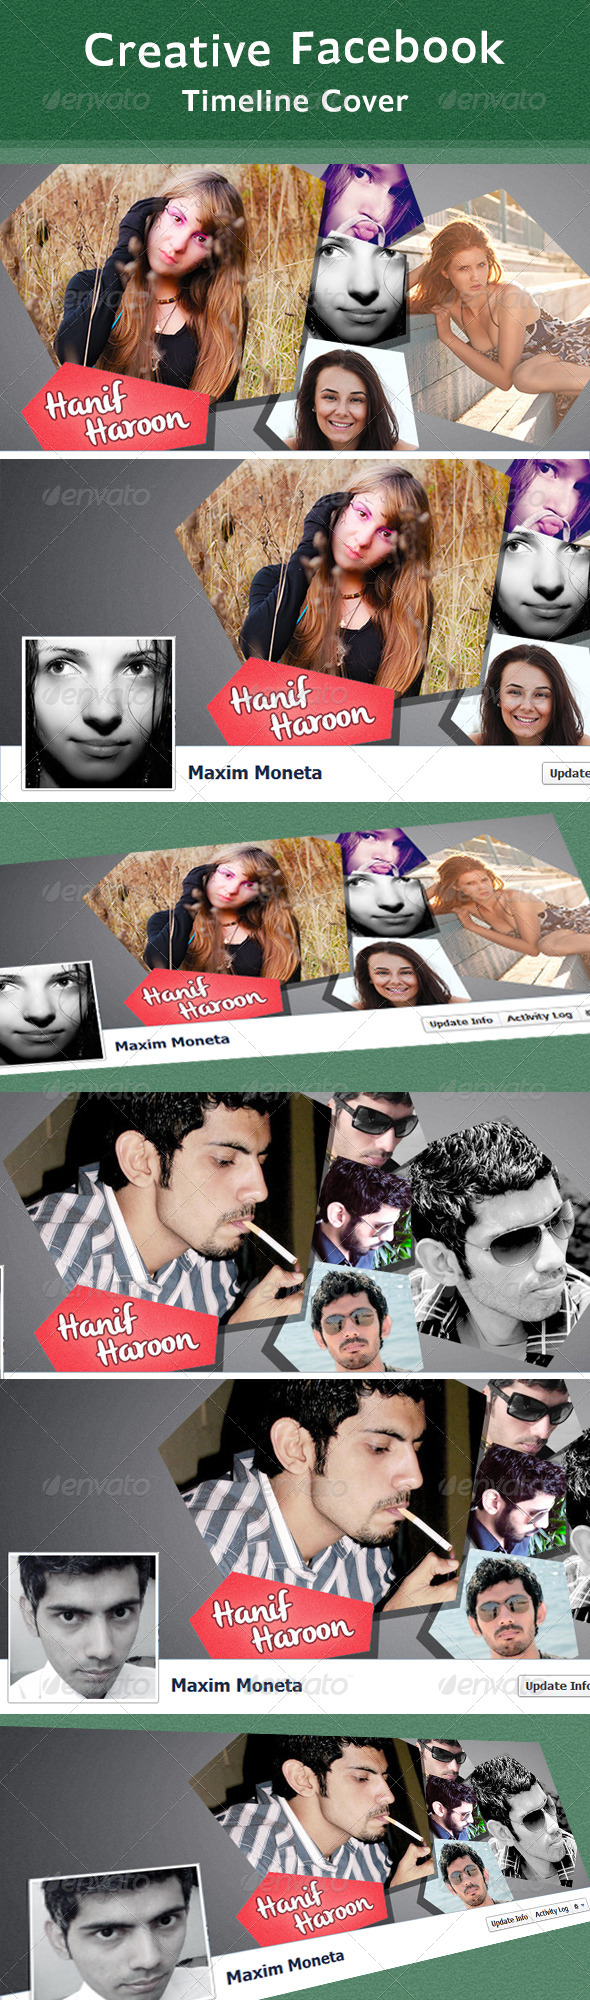 Creative Fb Timeline Cover - Facebook Timeline Covers Social Media